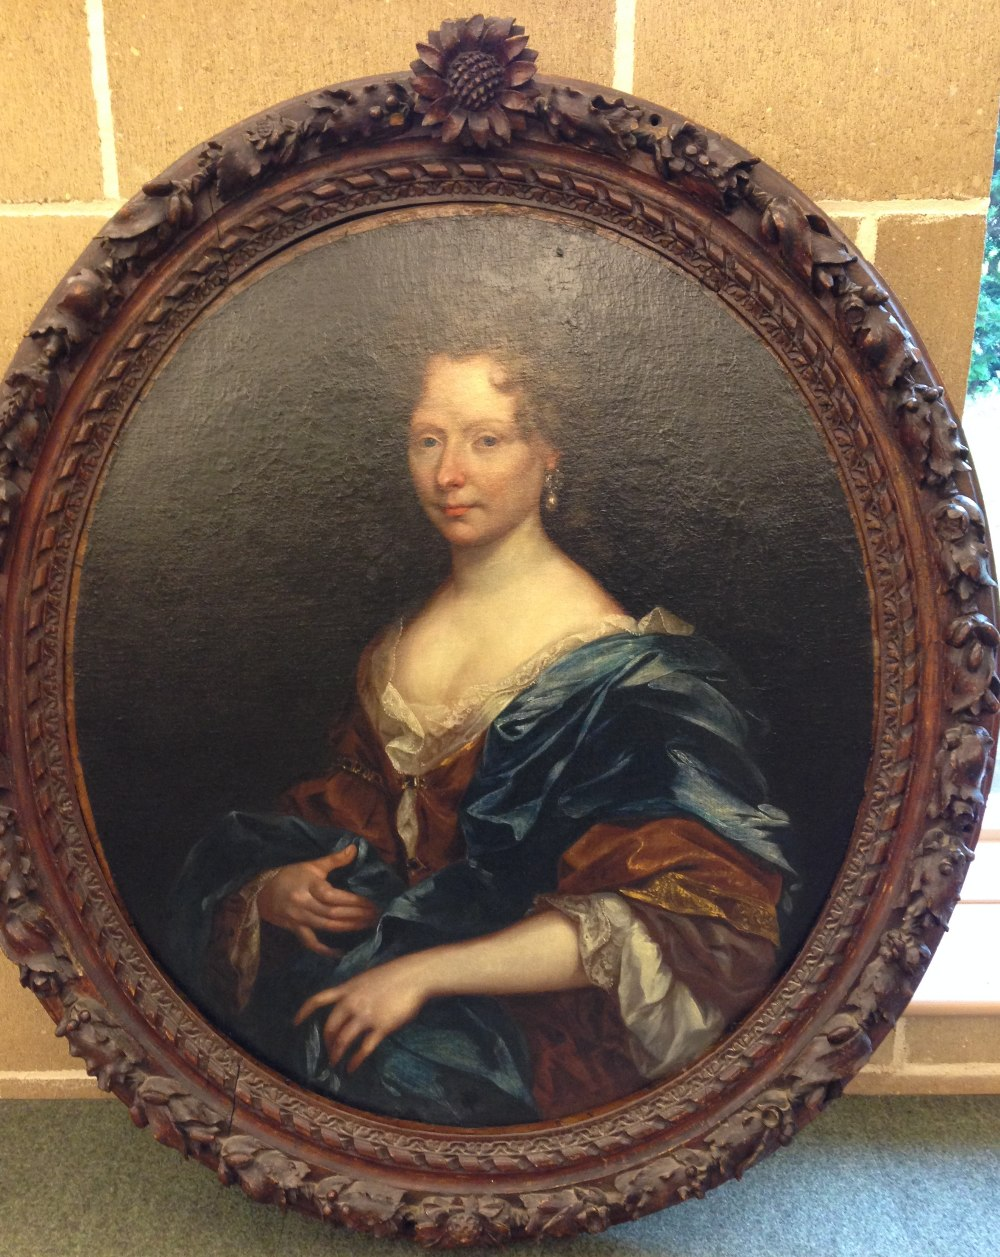 Lot 493 - Circle of William Wissing (Dutch, 1656-1687) Portrait of a lady in a gold dress and blue cloak, with